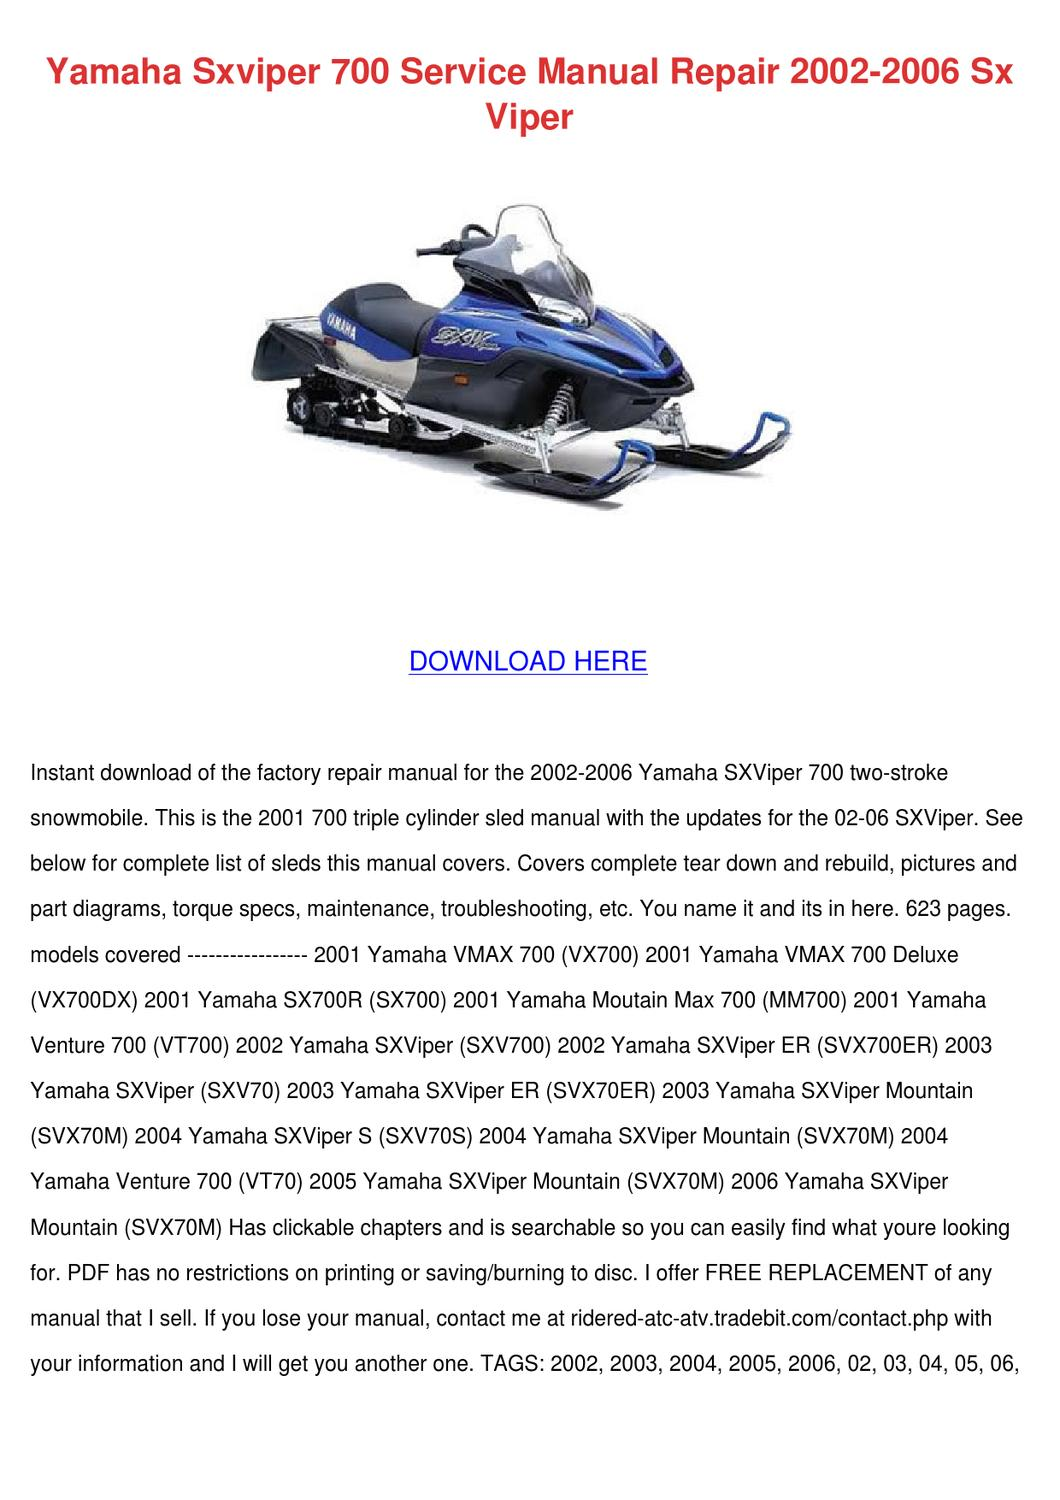 ... Array - yamaha sxviper 700 service manual repair 2002 by tiana chretien  issuu rh issuu ...